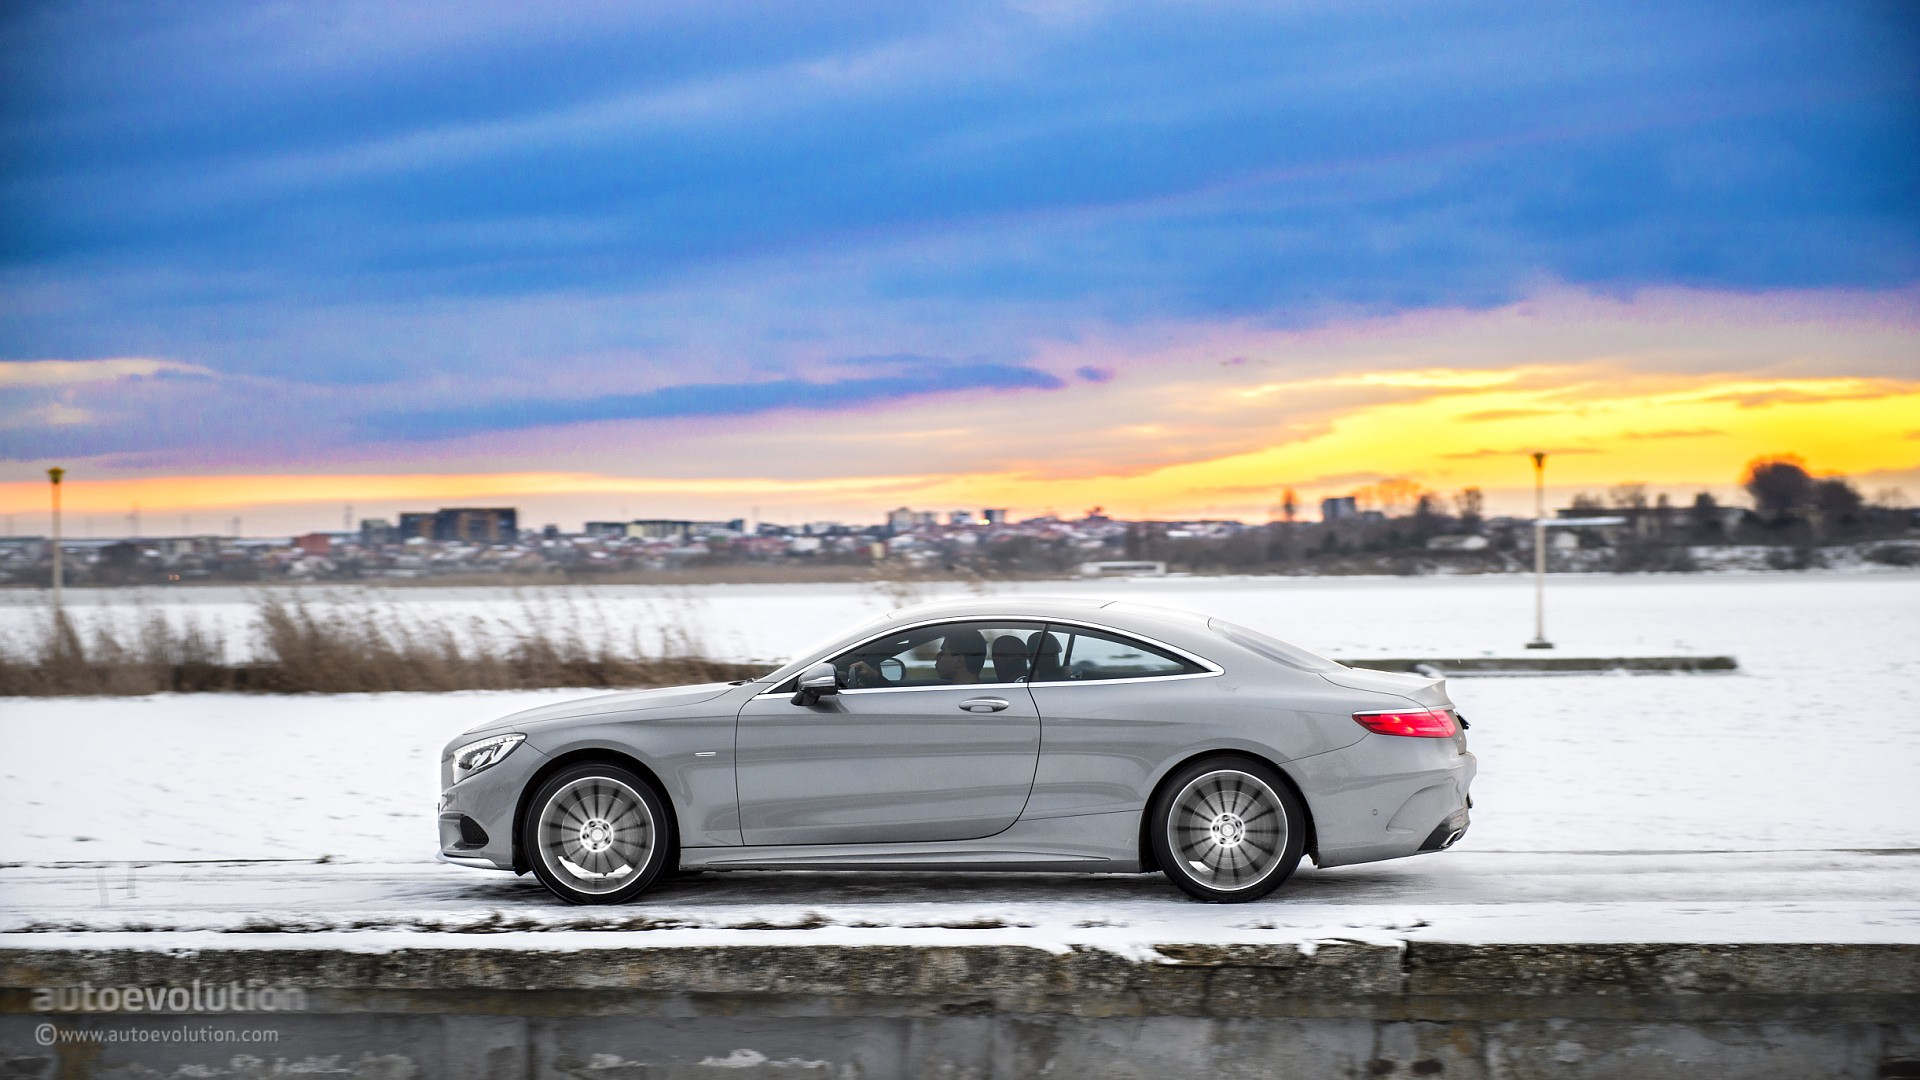 2015 Mercedes Benz S Class Coupe HD Wallpapers If Rodin